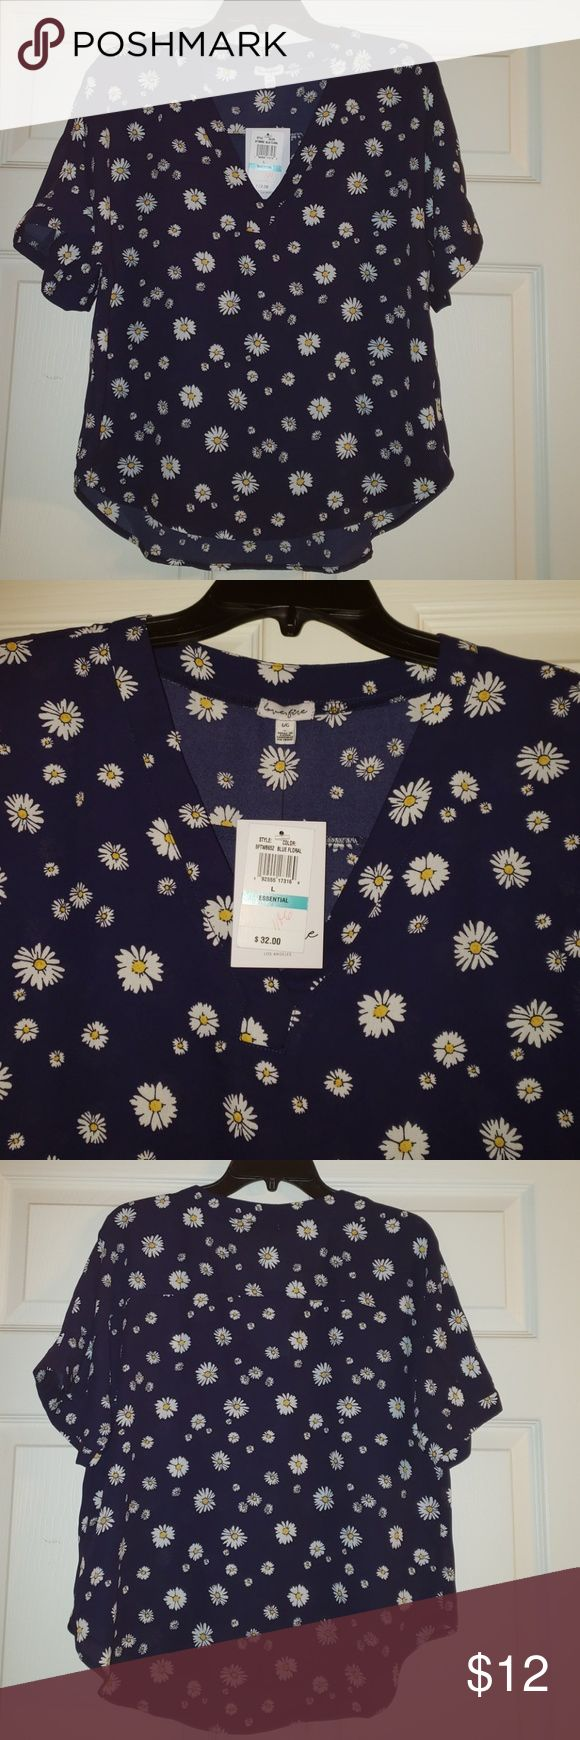 Blouse Nwt from the Belk juniors department, rolled sleeve